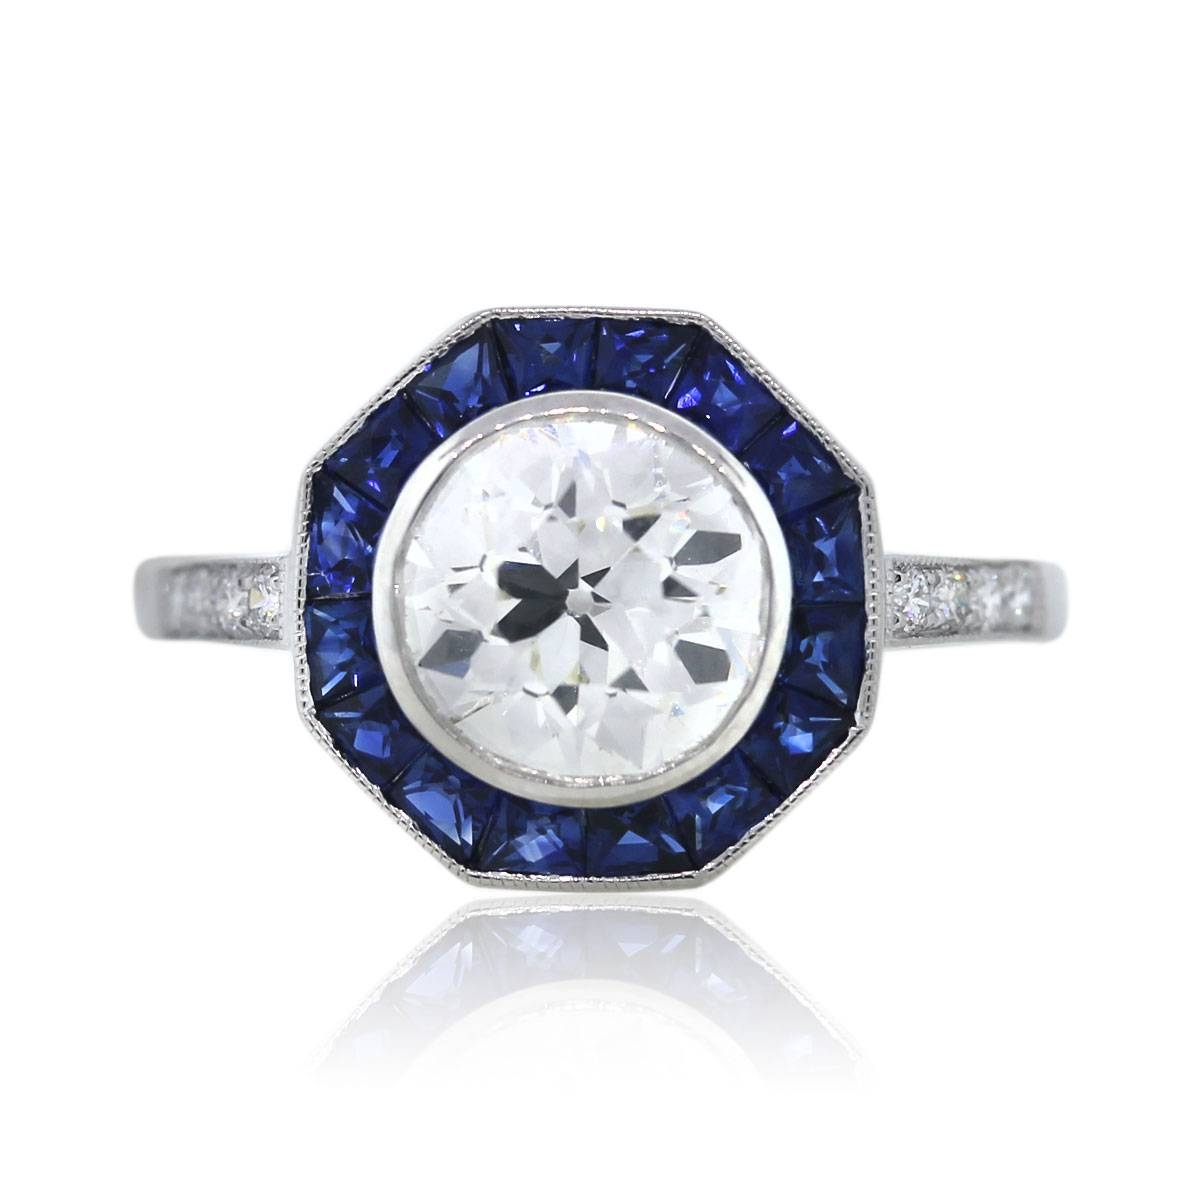 Platinum Octagonal Art Deco Diamond And Sapphire Engagement Ring Regarding Engagement Rings Sapphire (View 10 of 15)